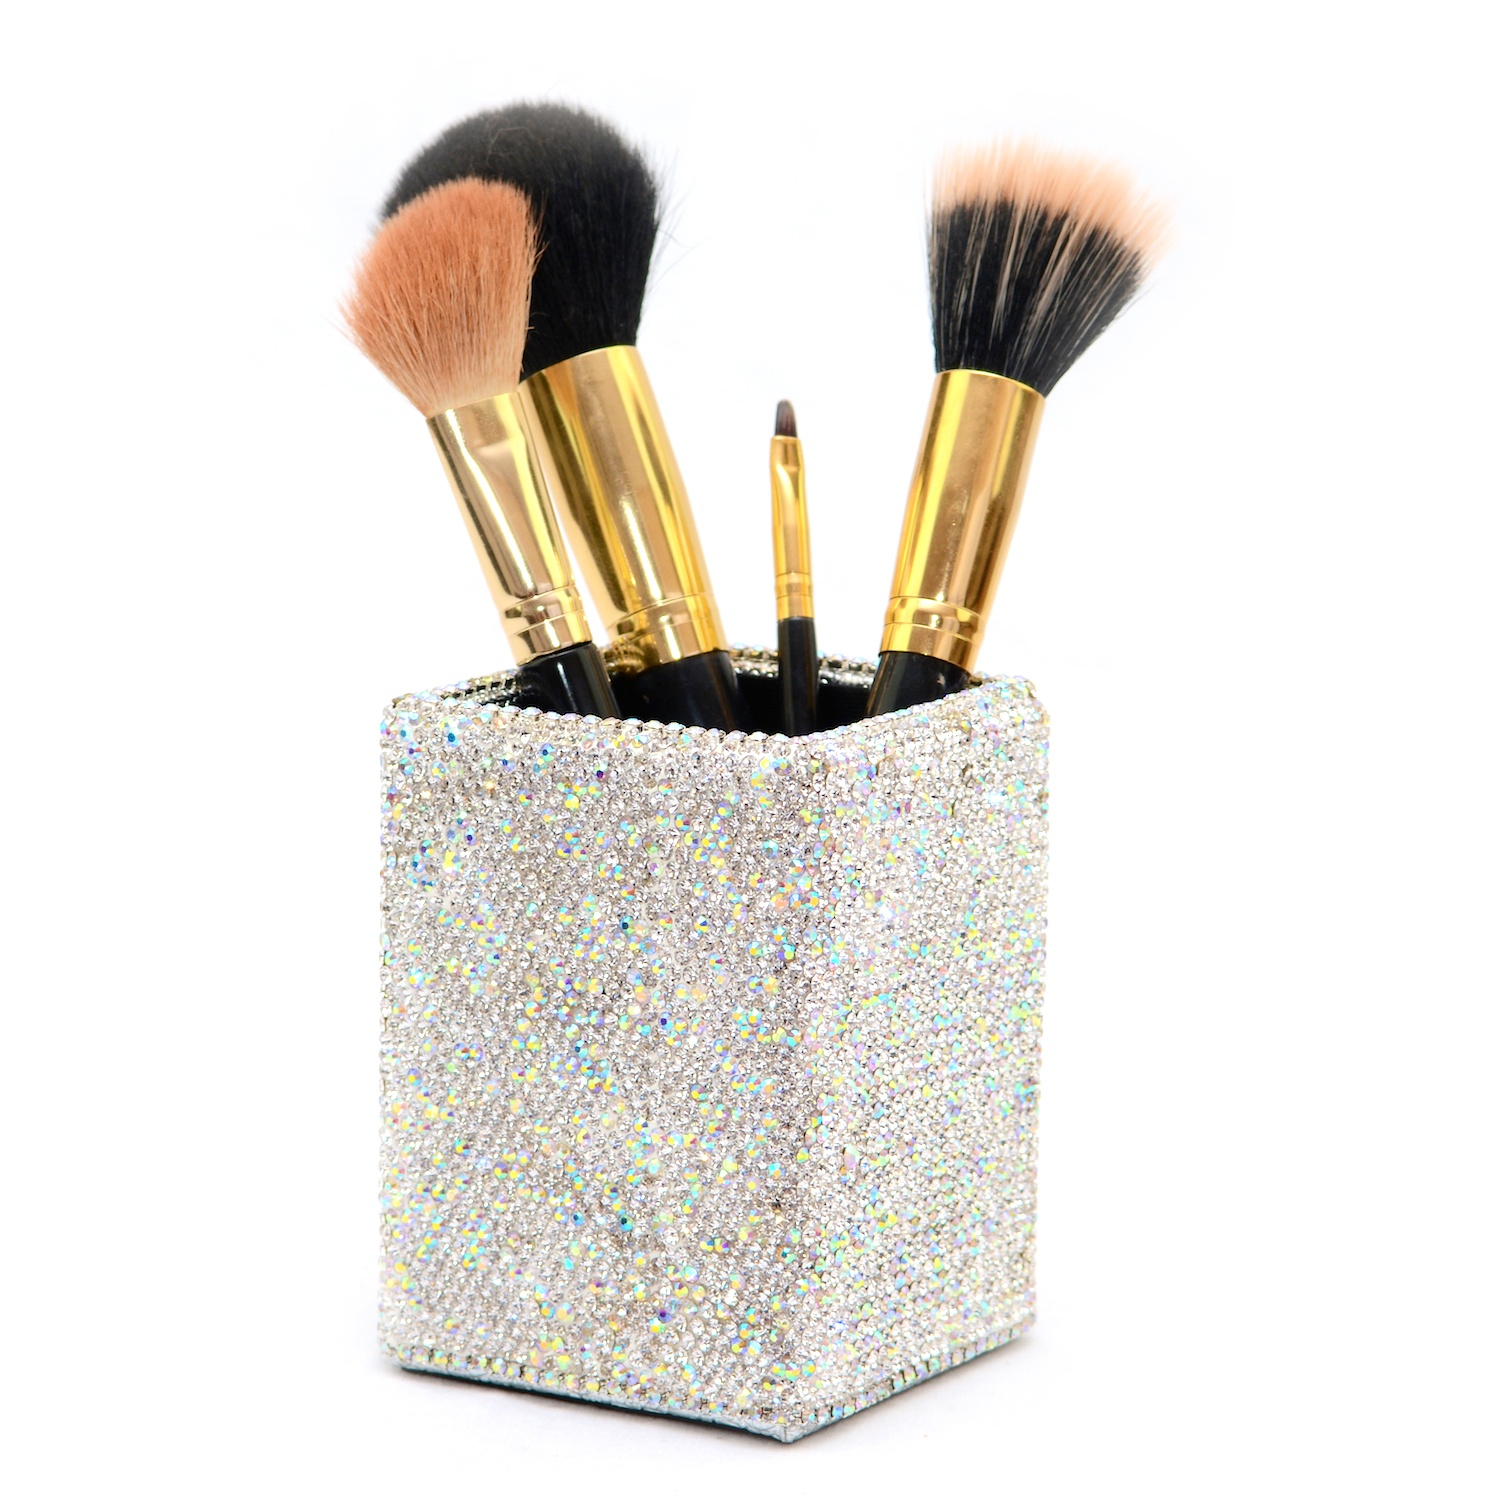 brush holder beads. diamante makeup brush holder beads